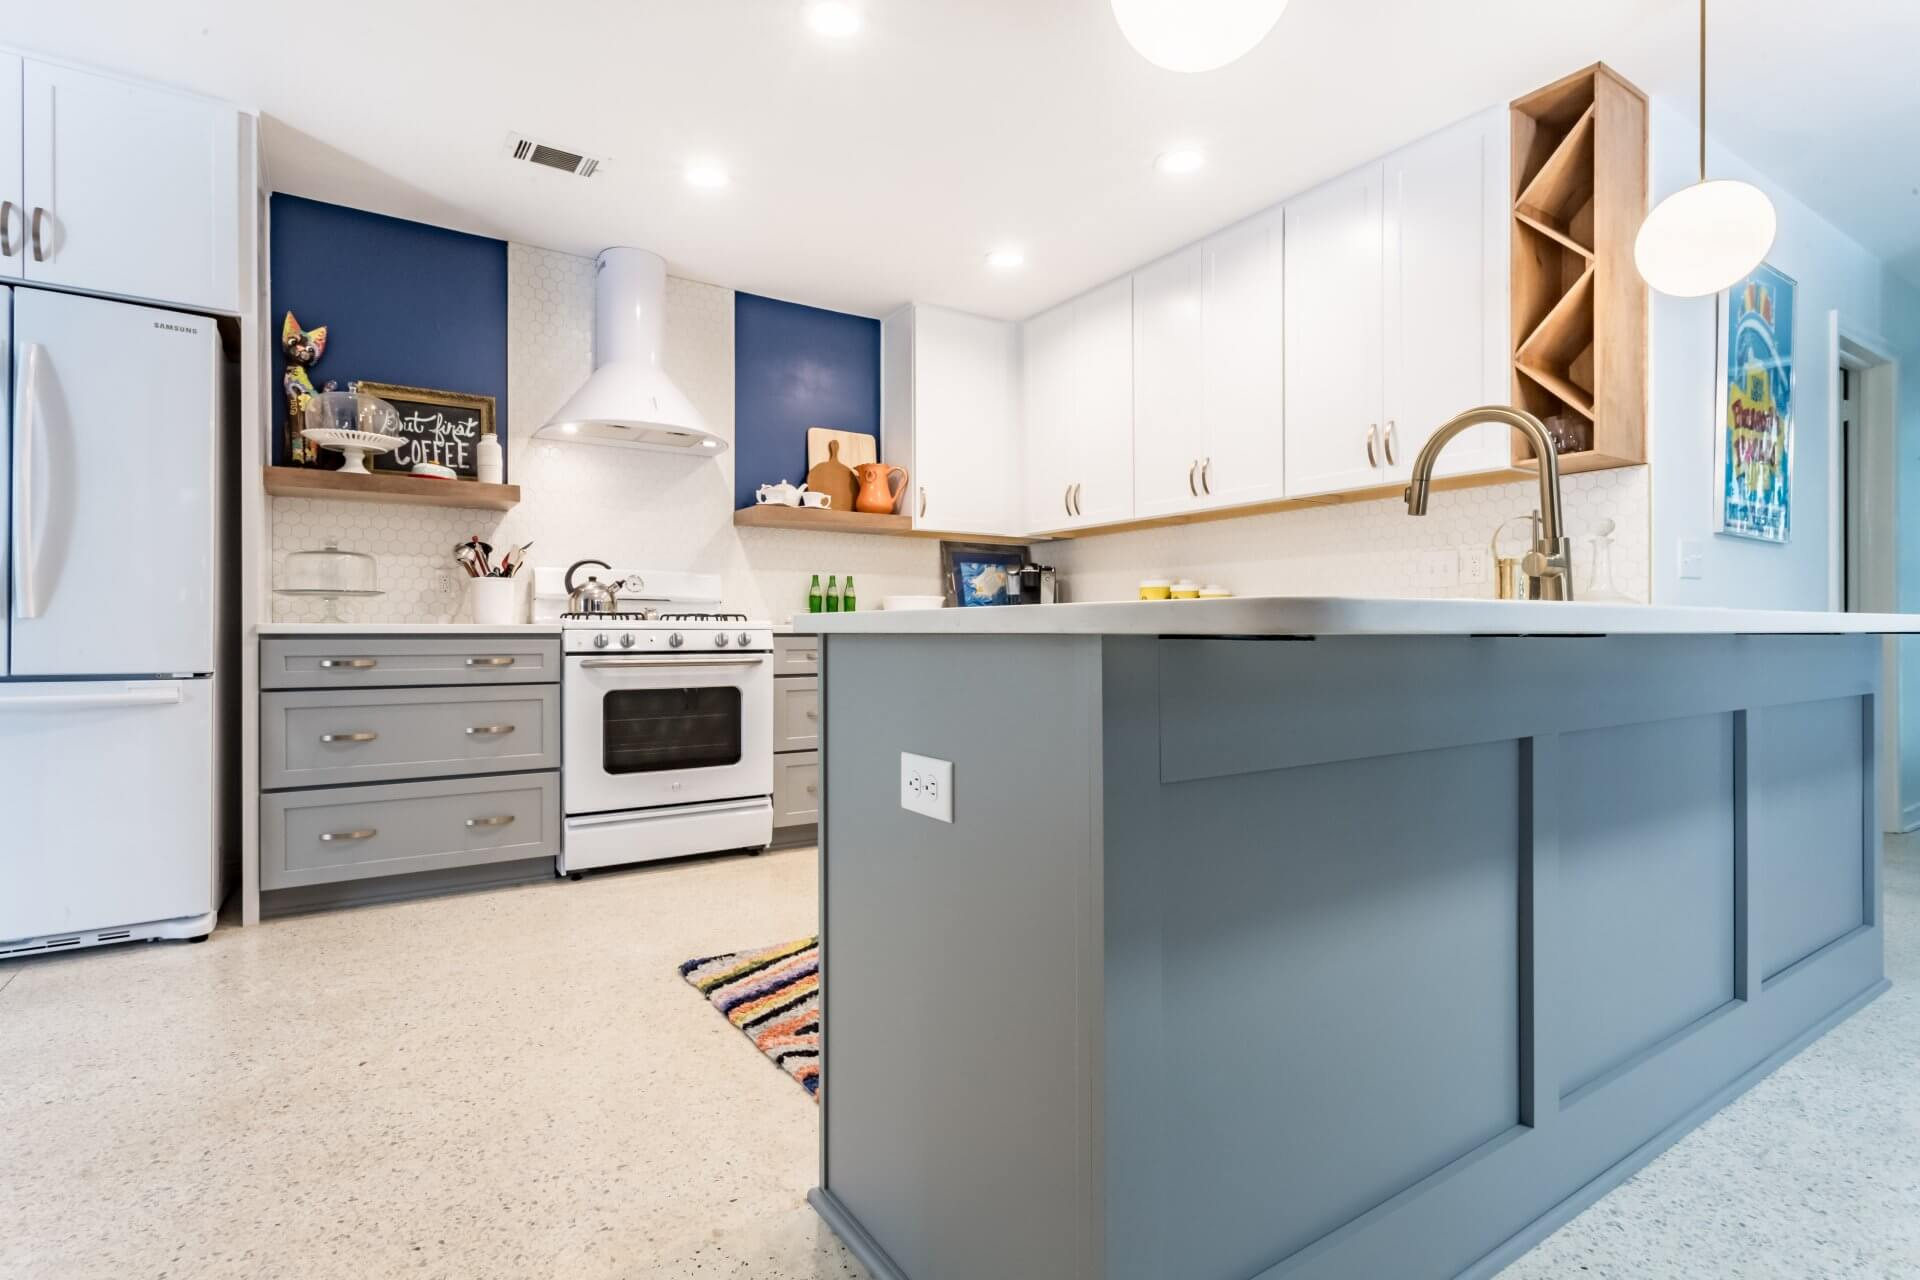 After: Mid-century modern kitchen remodel with island for eating and storage